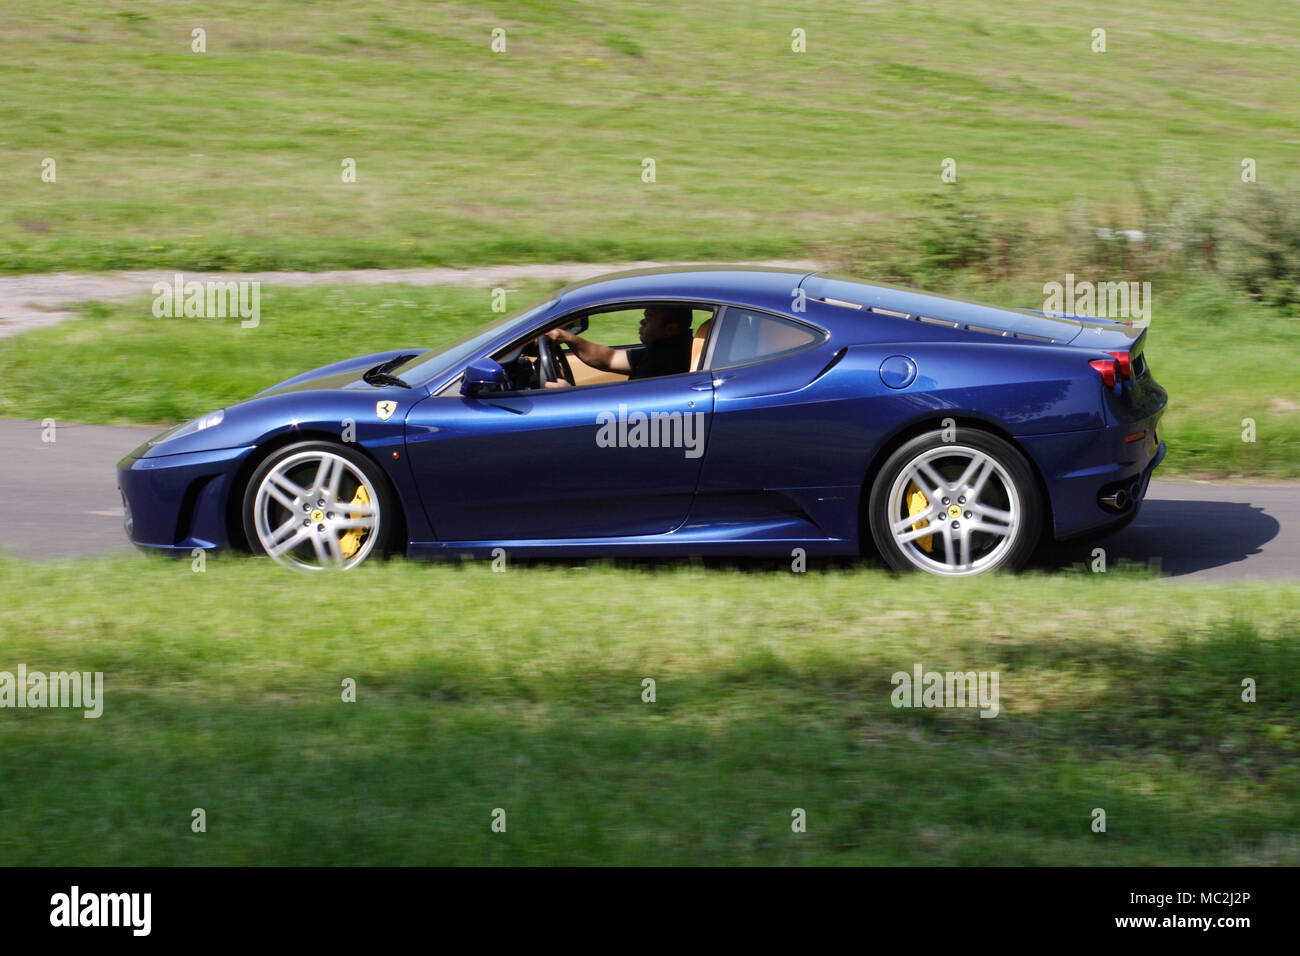 Blue Ferrari 360 entry level used Ferrari sportscar, driving fast and photographed in profile (side view). - Stock Image